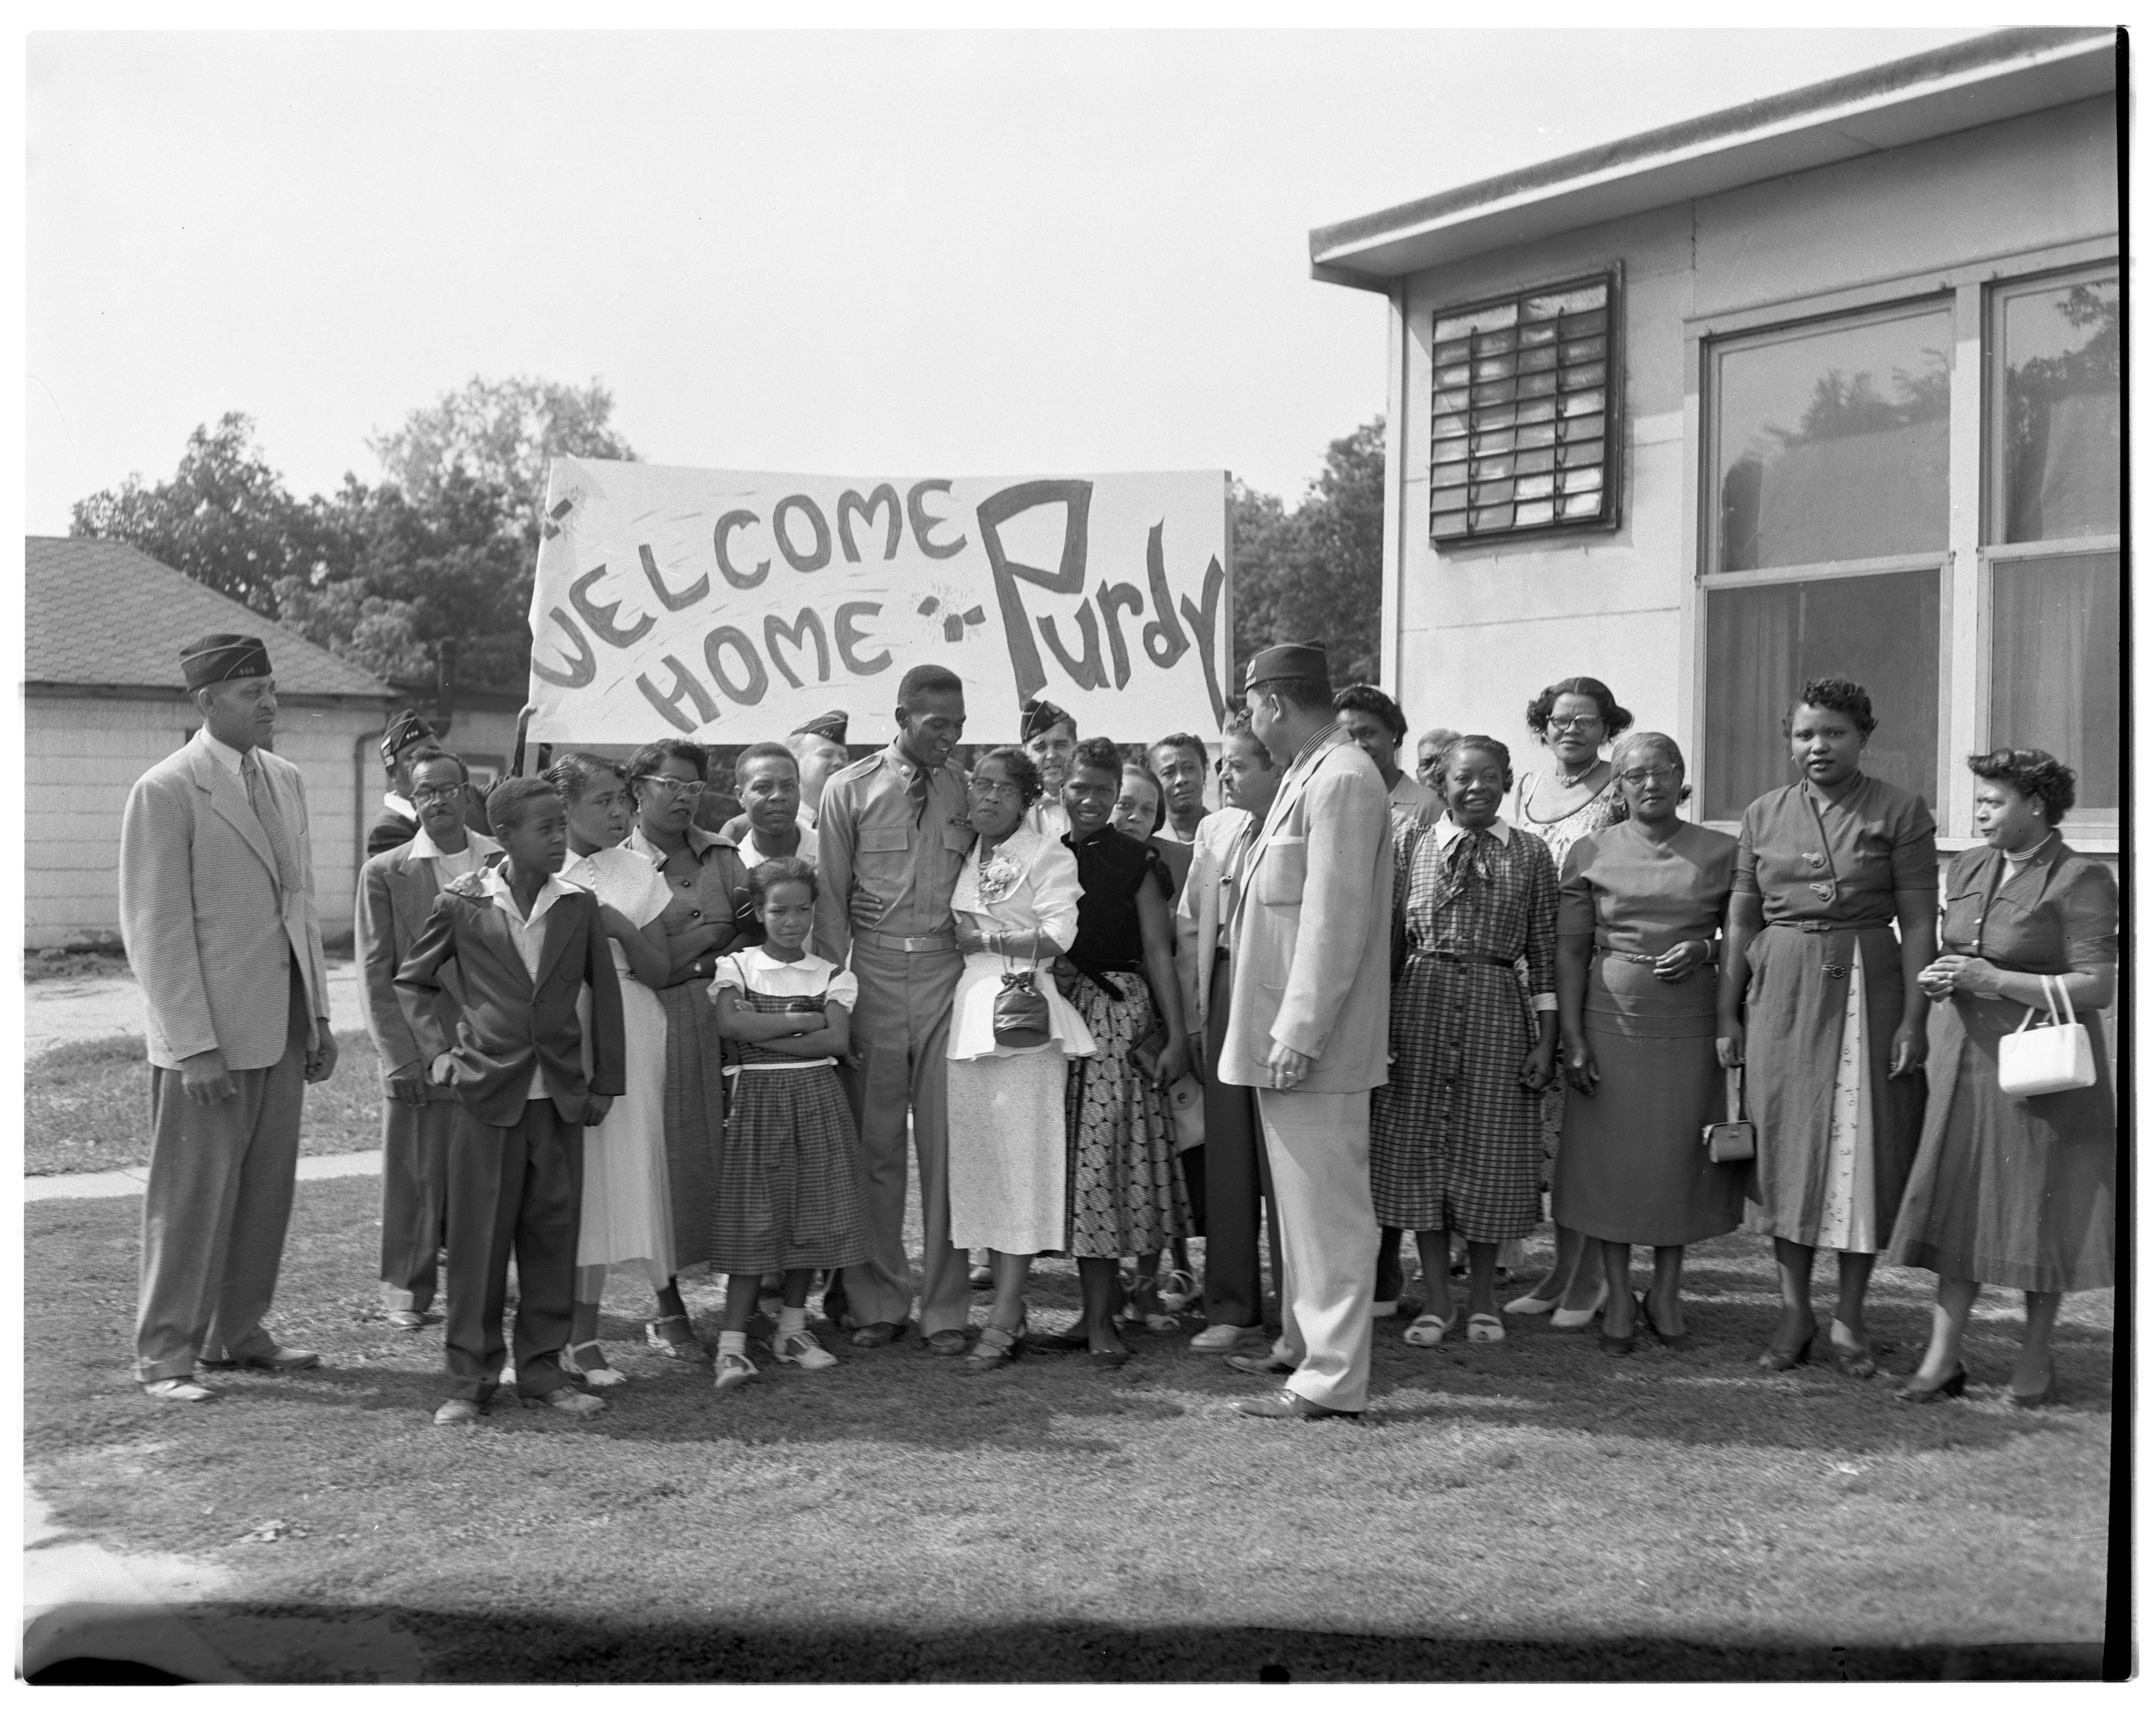 Welcoming Ceremony for Korean War Vet Robert W. Fletcher, August 1953 image